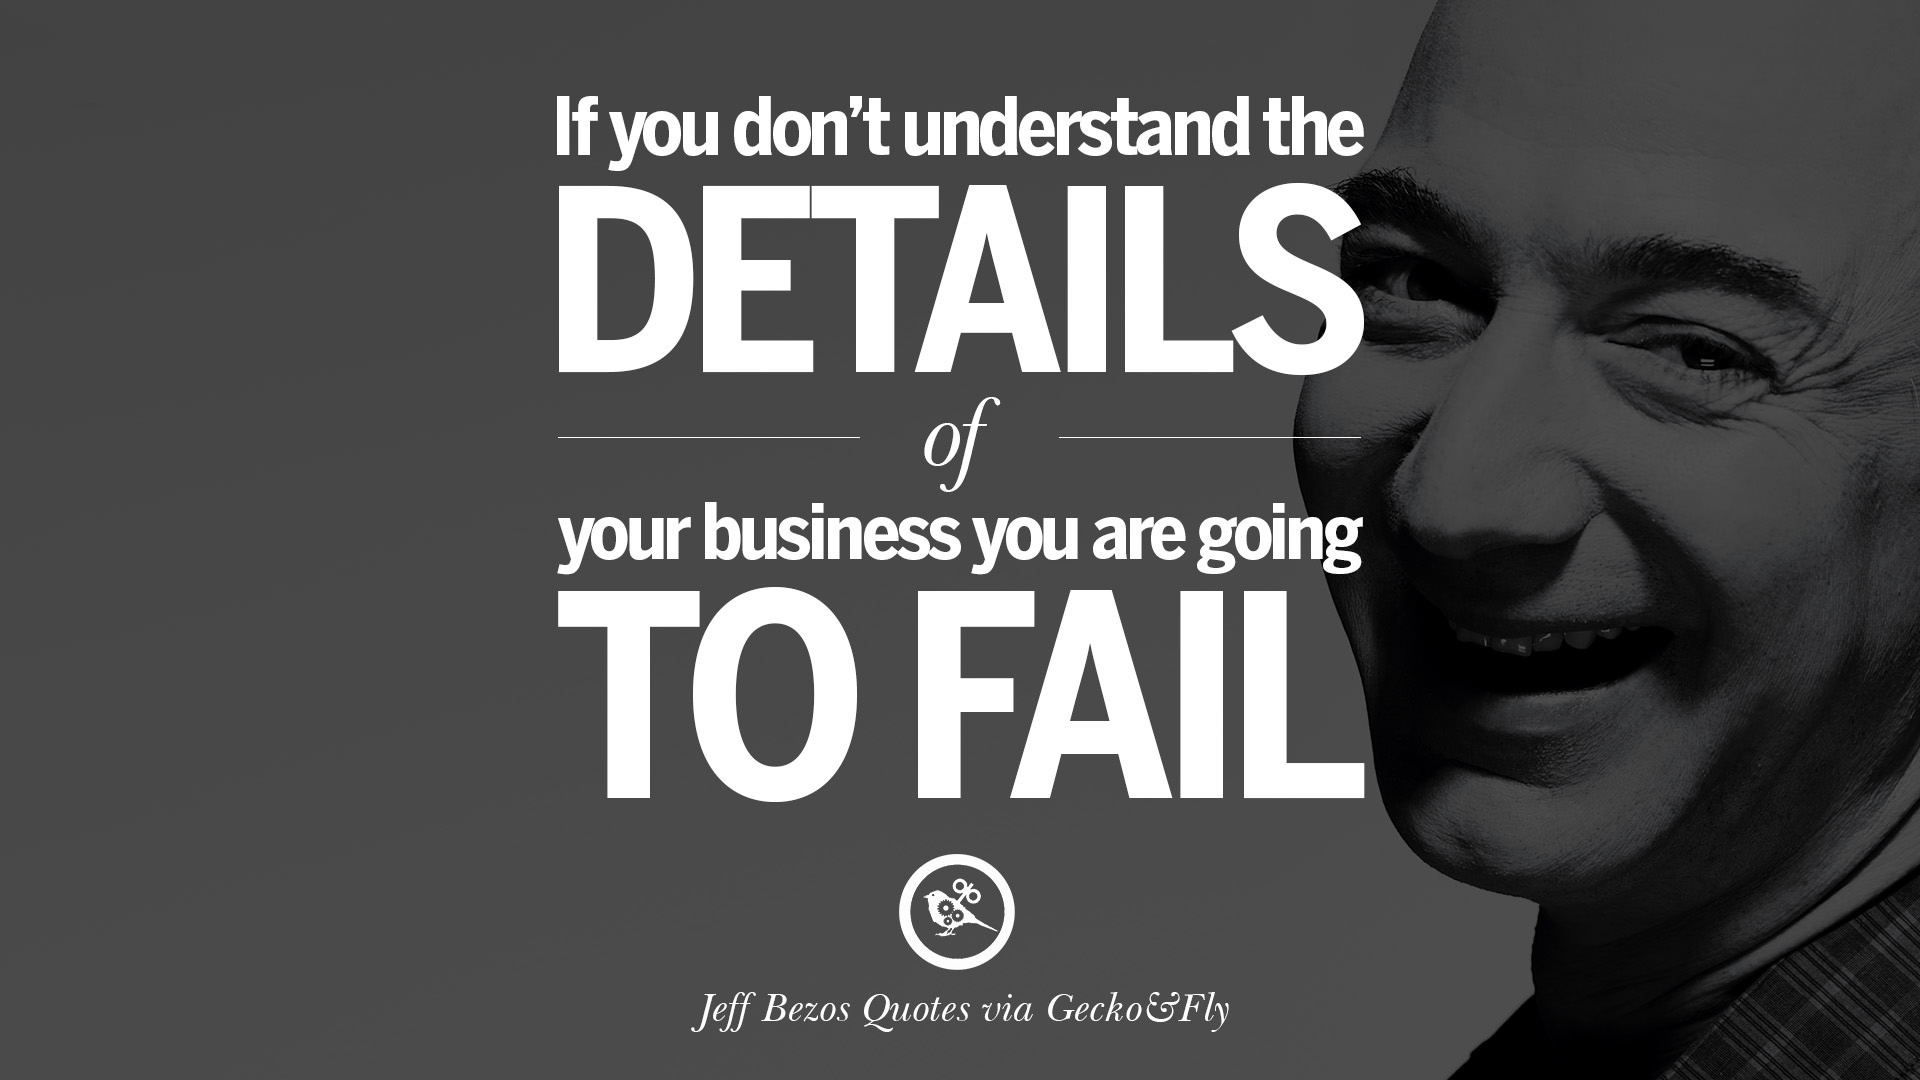 Quotes On Innovation Simple 20 Famous Jeff Bezos Quotes On Innovation Business Commerce And